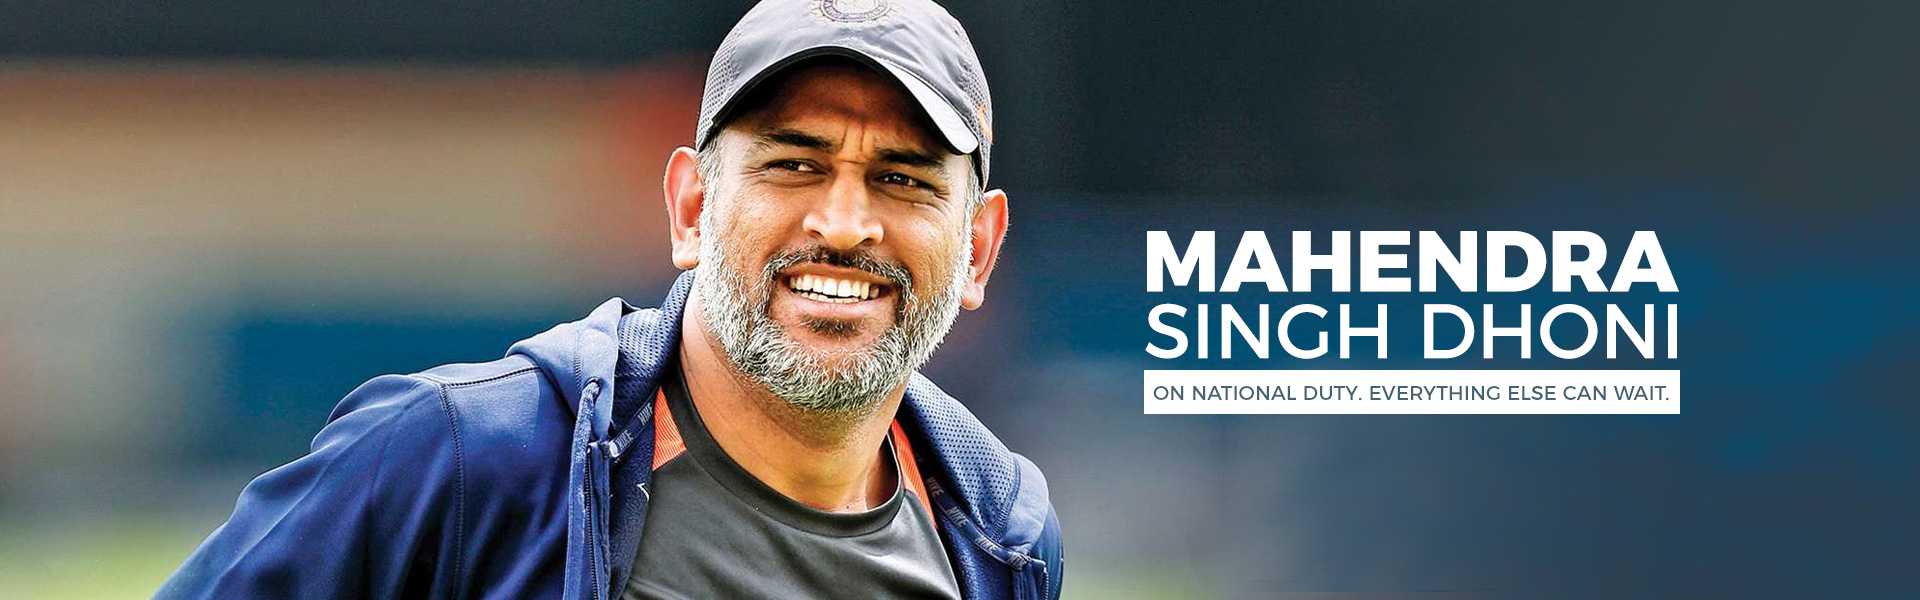 Mahendra Singh Dhoni Member Team India, biker, gamer, Hindi retro aficionado & an absolute pet-lover.